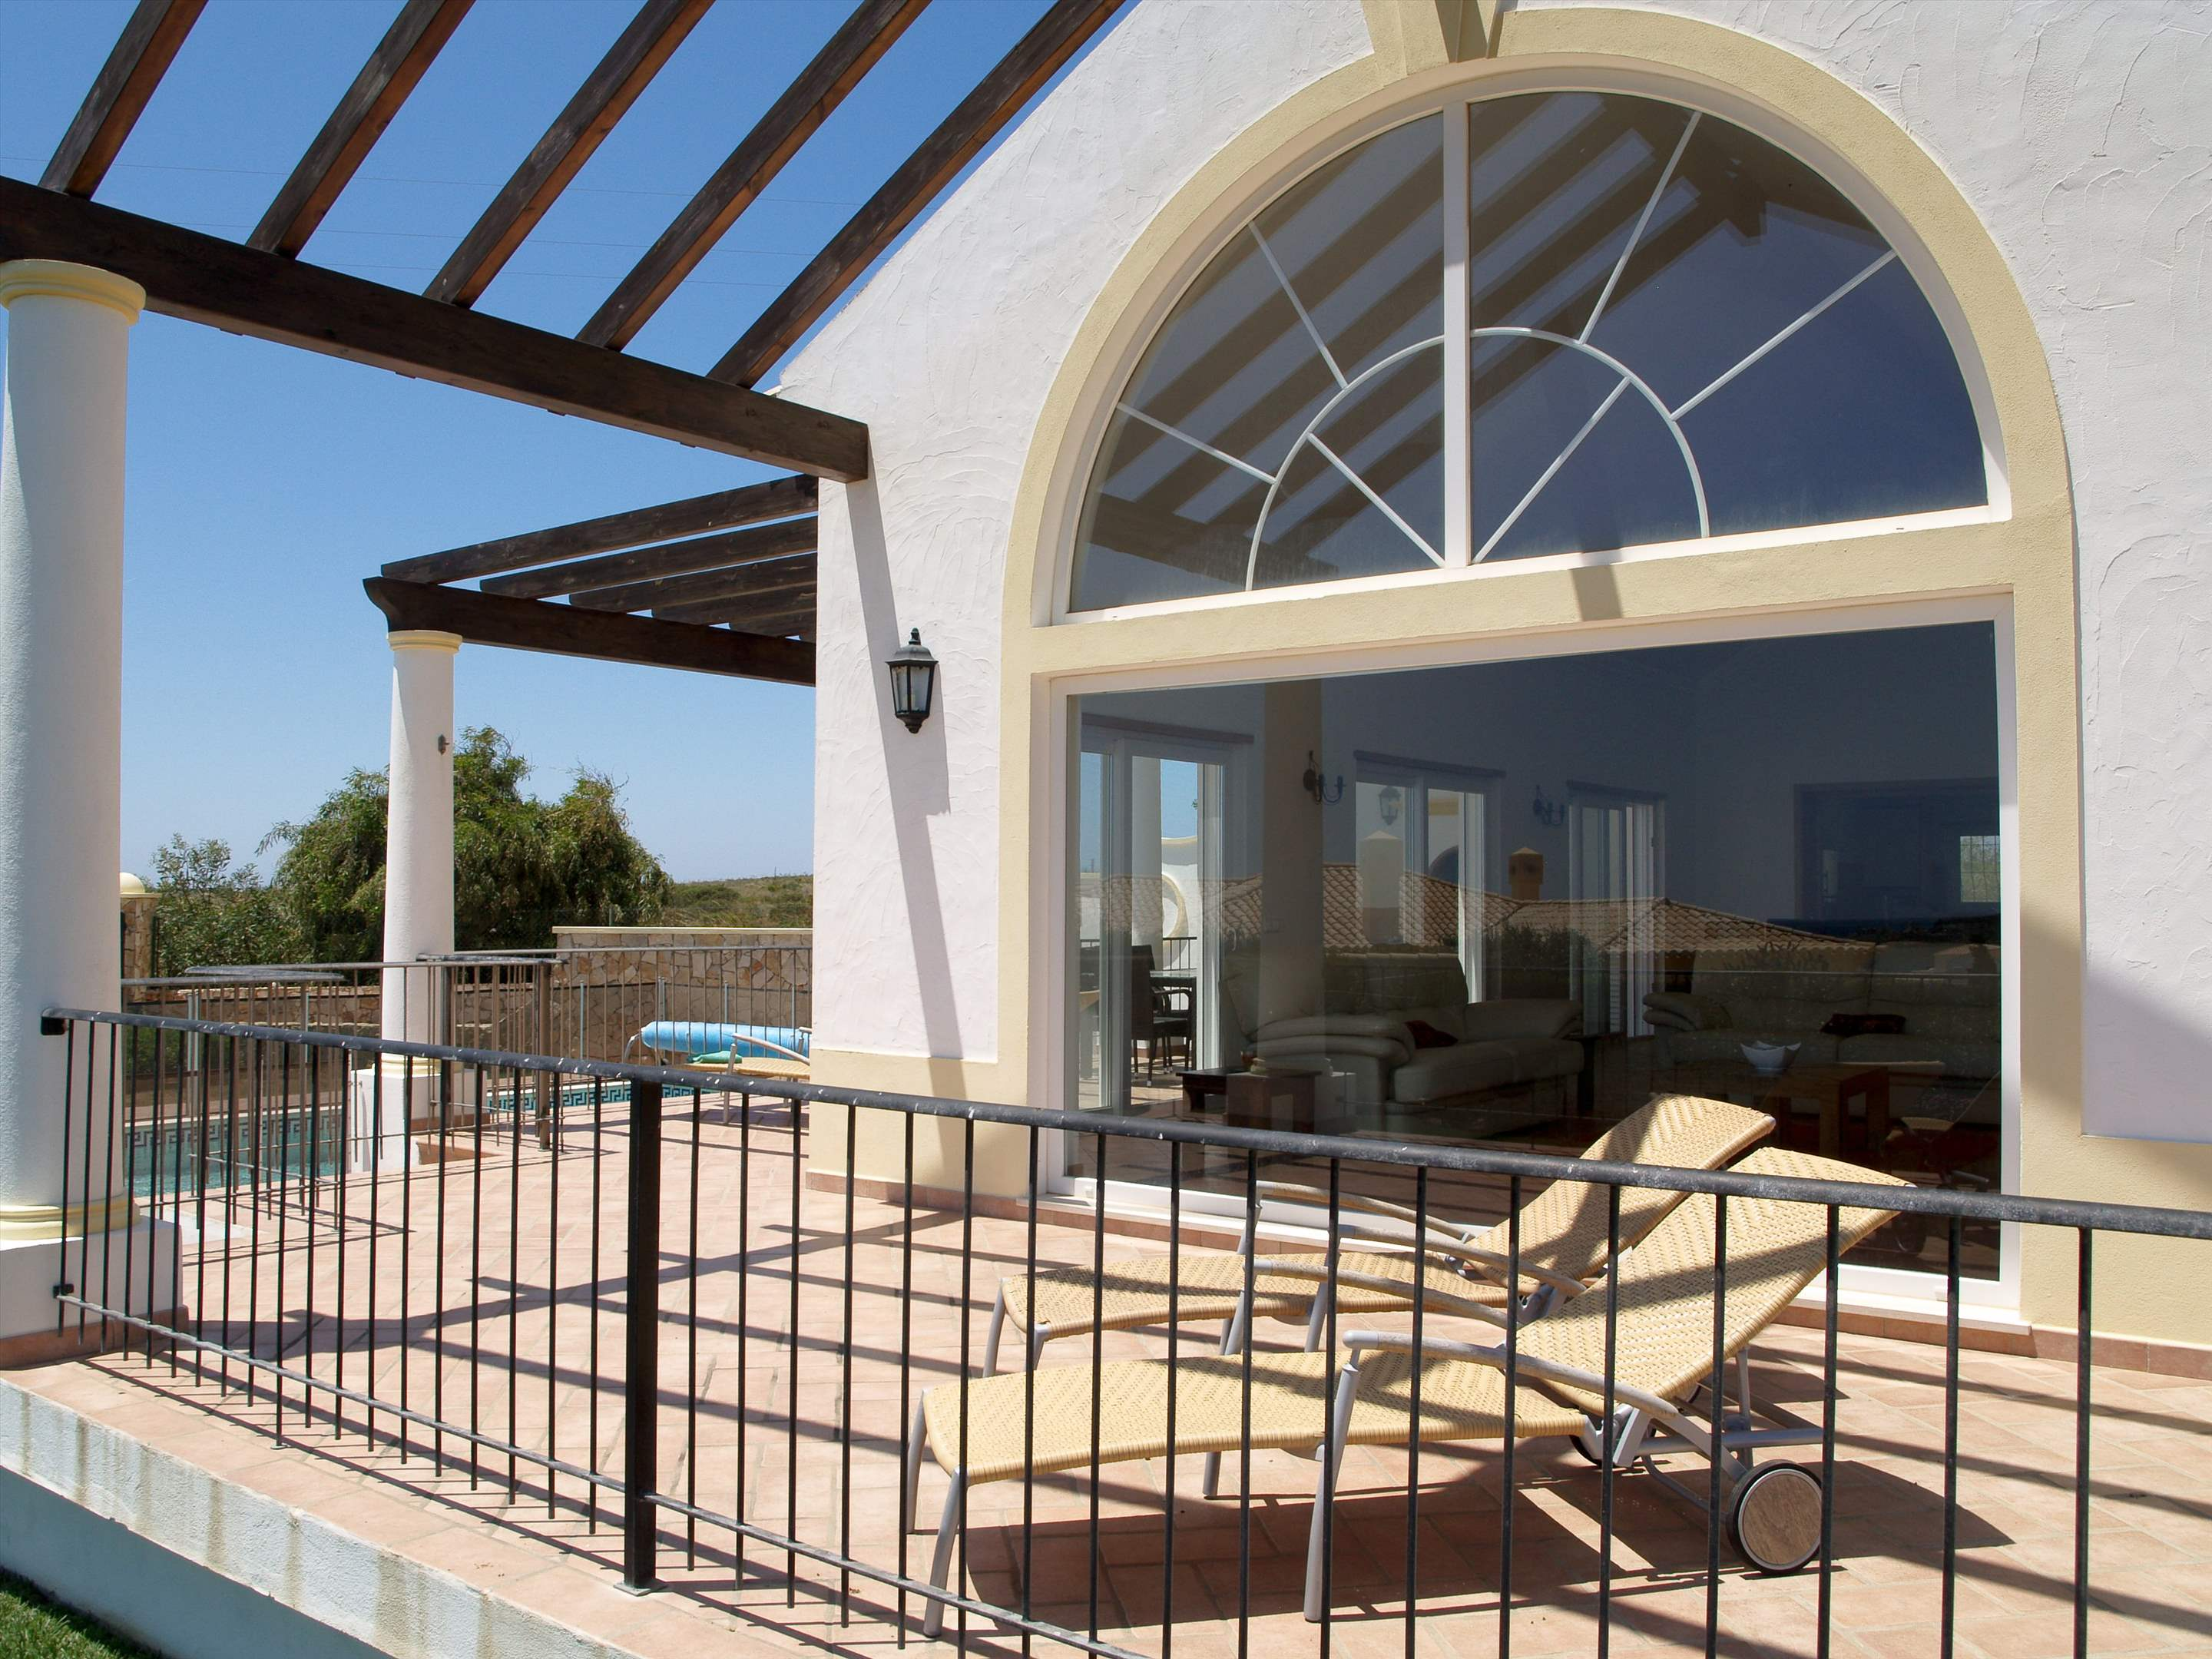 Martinhal Luxury Villa No.8, Three Bedroom Villa, 3 bedroom villa in Martinhal Sagres, Algarve Photo #9